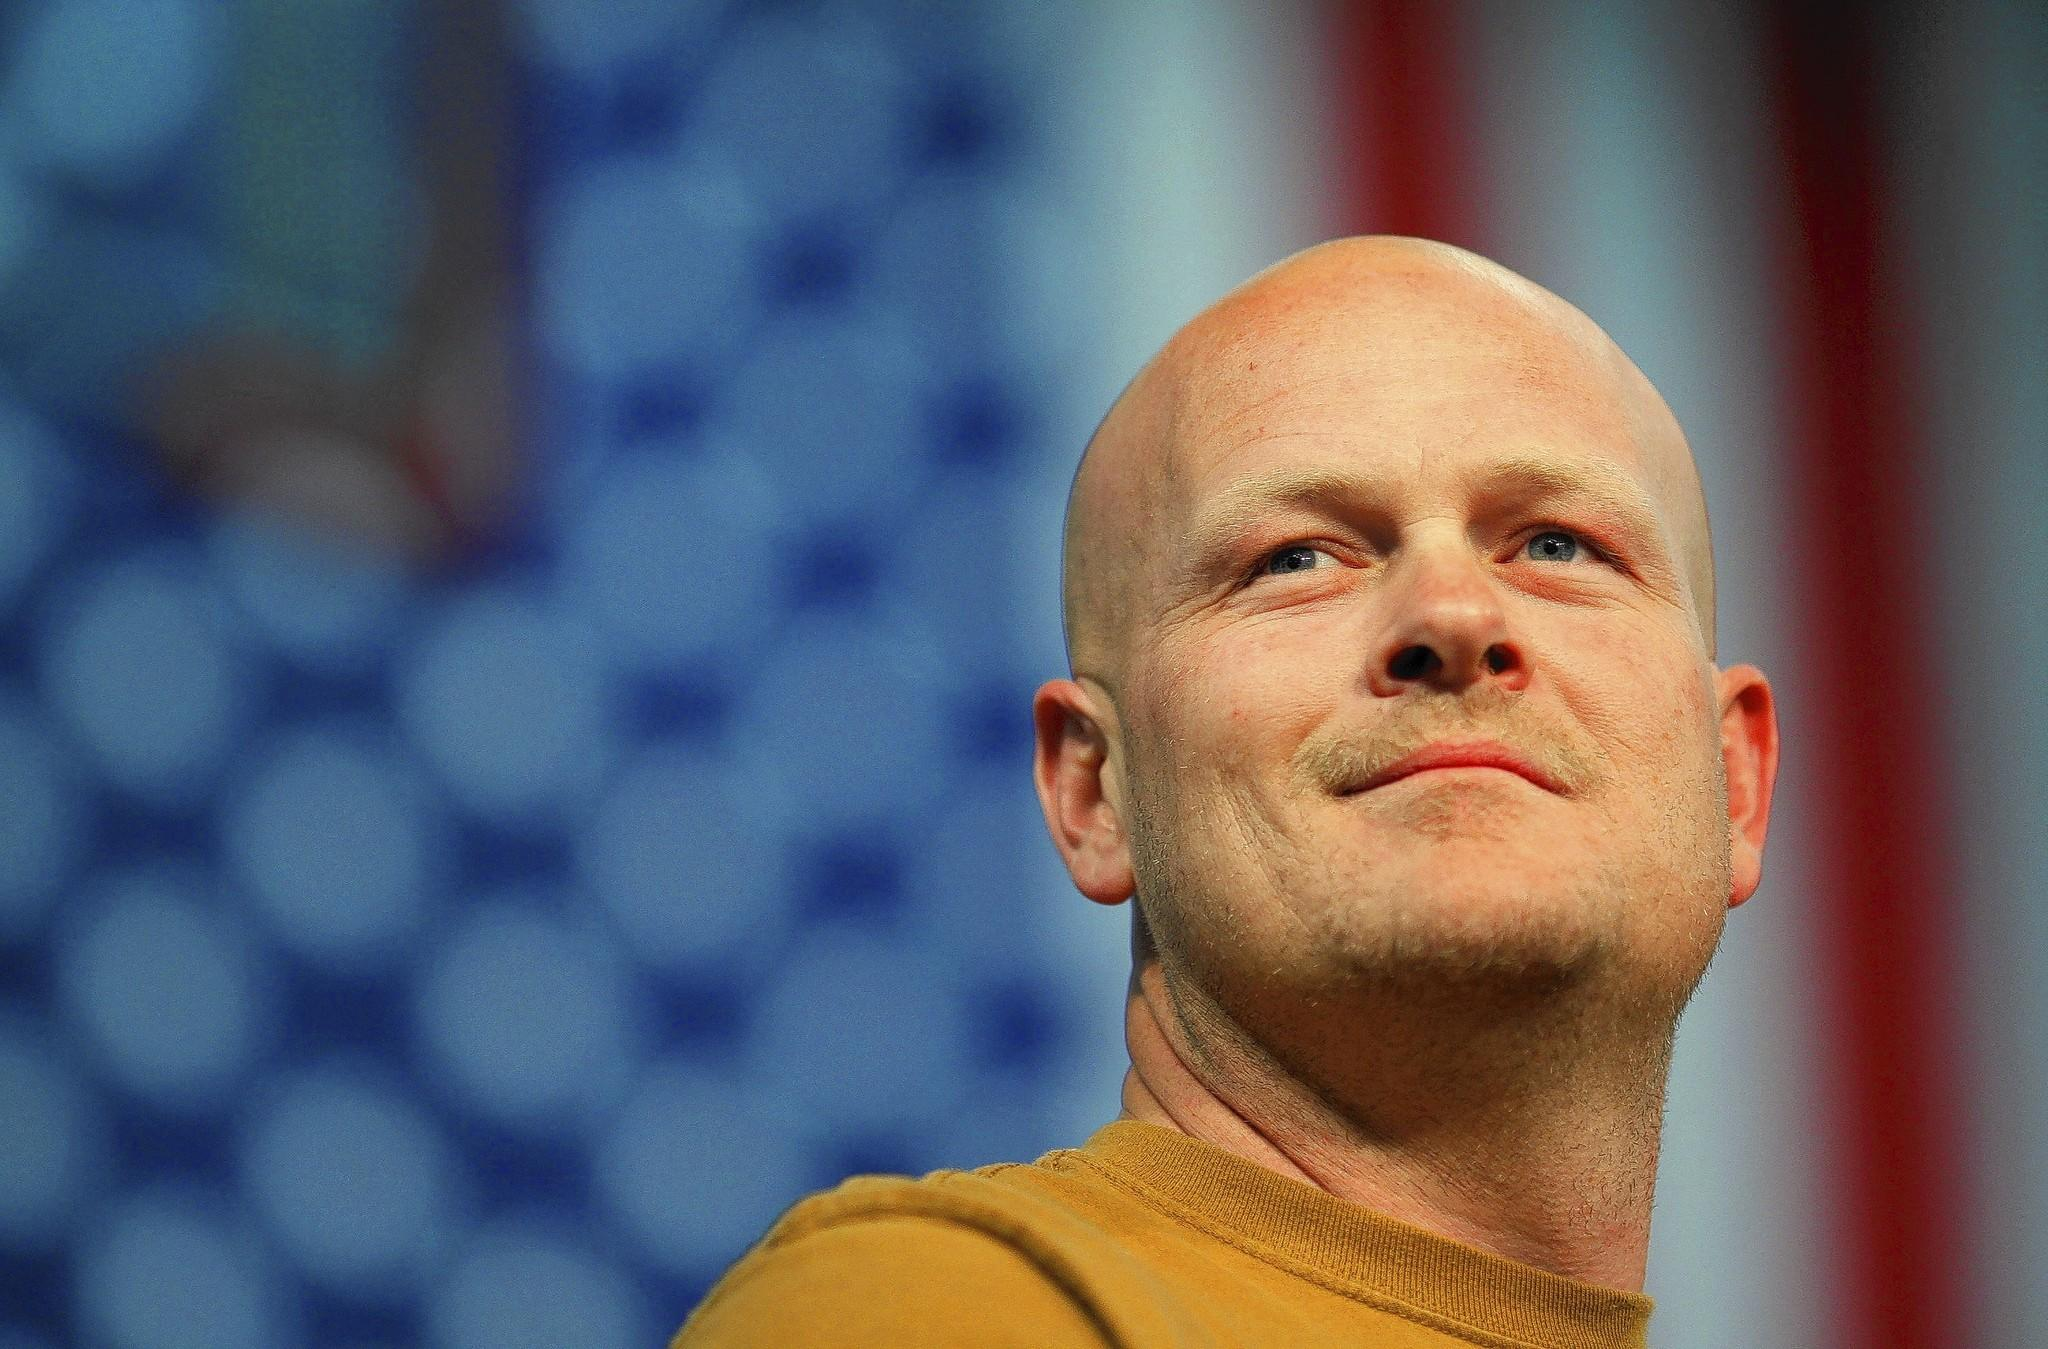 """Joe Wurzelbacher, also known as """"Joe the Plumber,"""" stands onstage at a campaign rally in Ohio in this file photo taken on Oct. 30, 2008."""